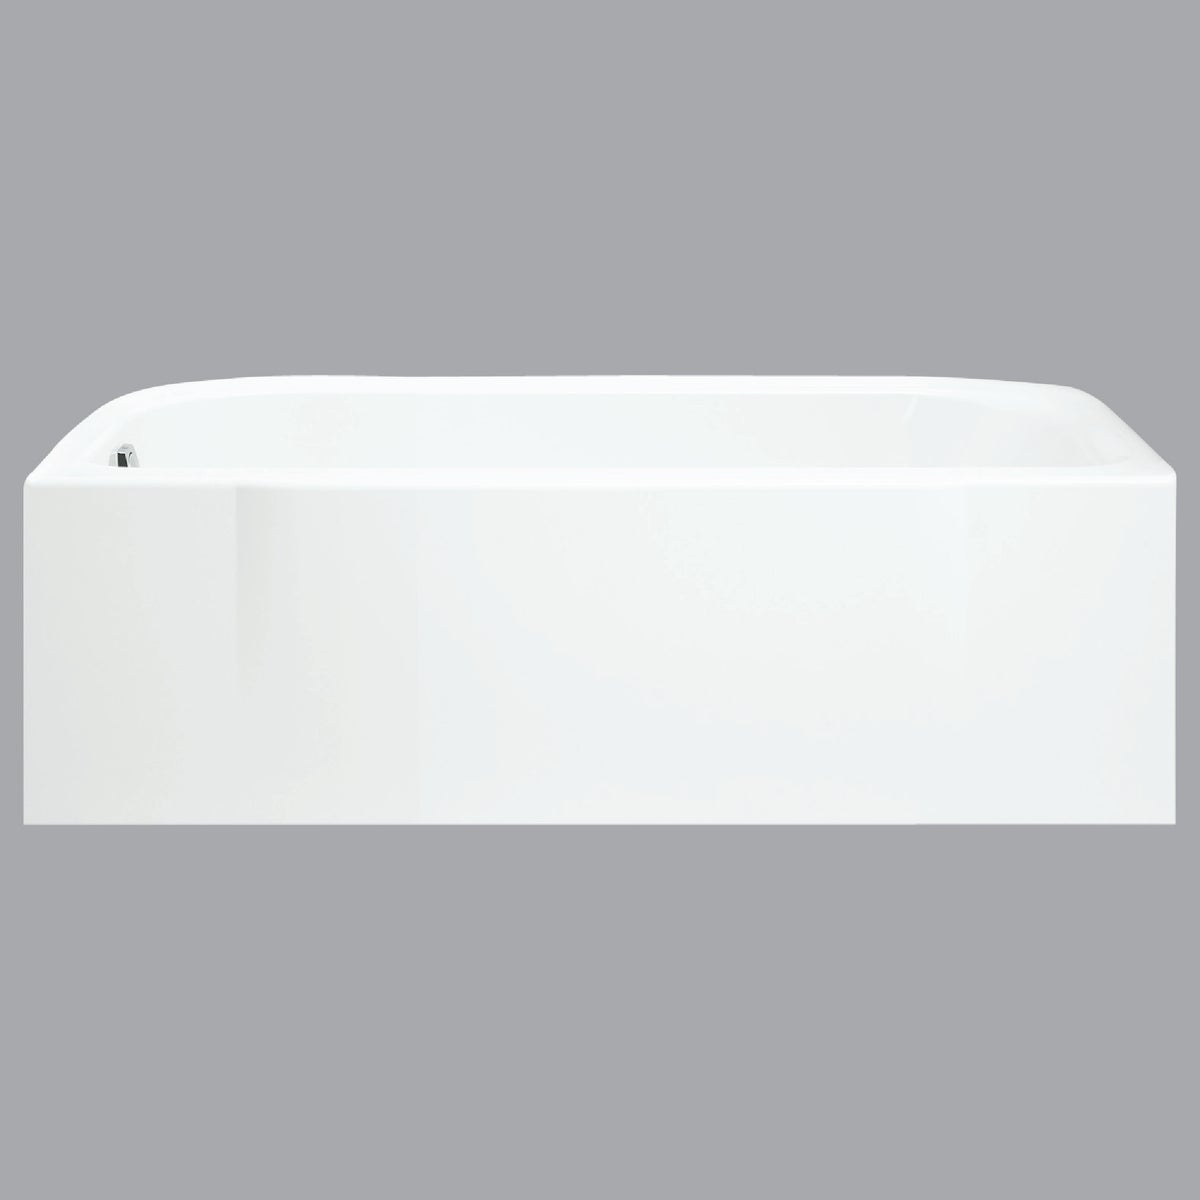 ACCORD LH TUB - 71141110-0 by Sterling Pbg/vikrell